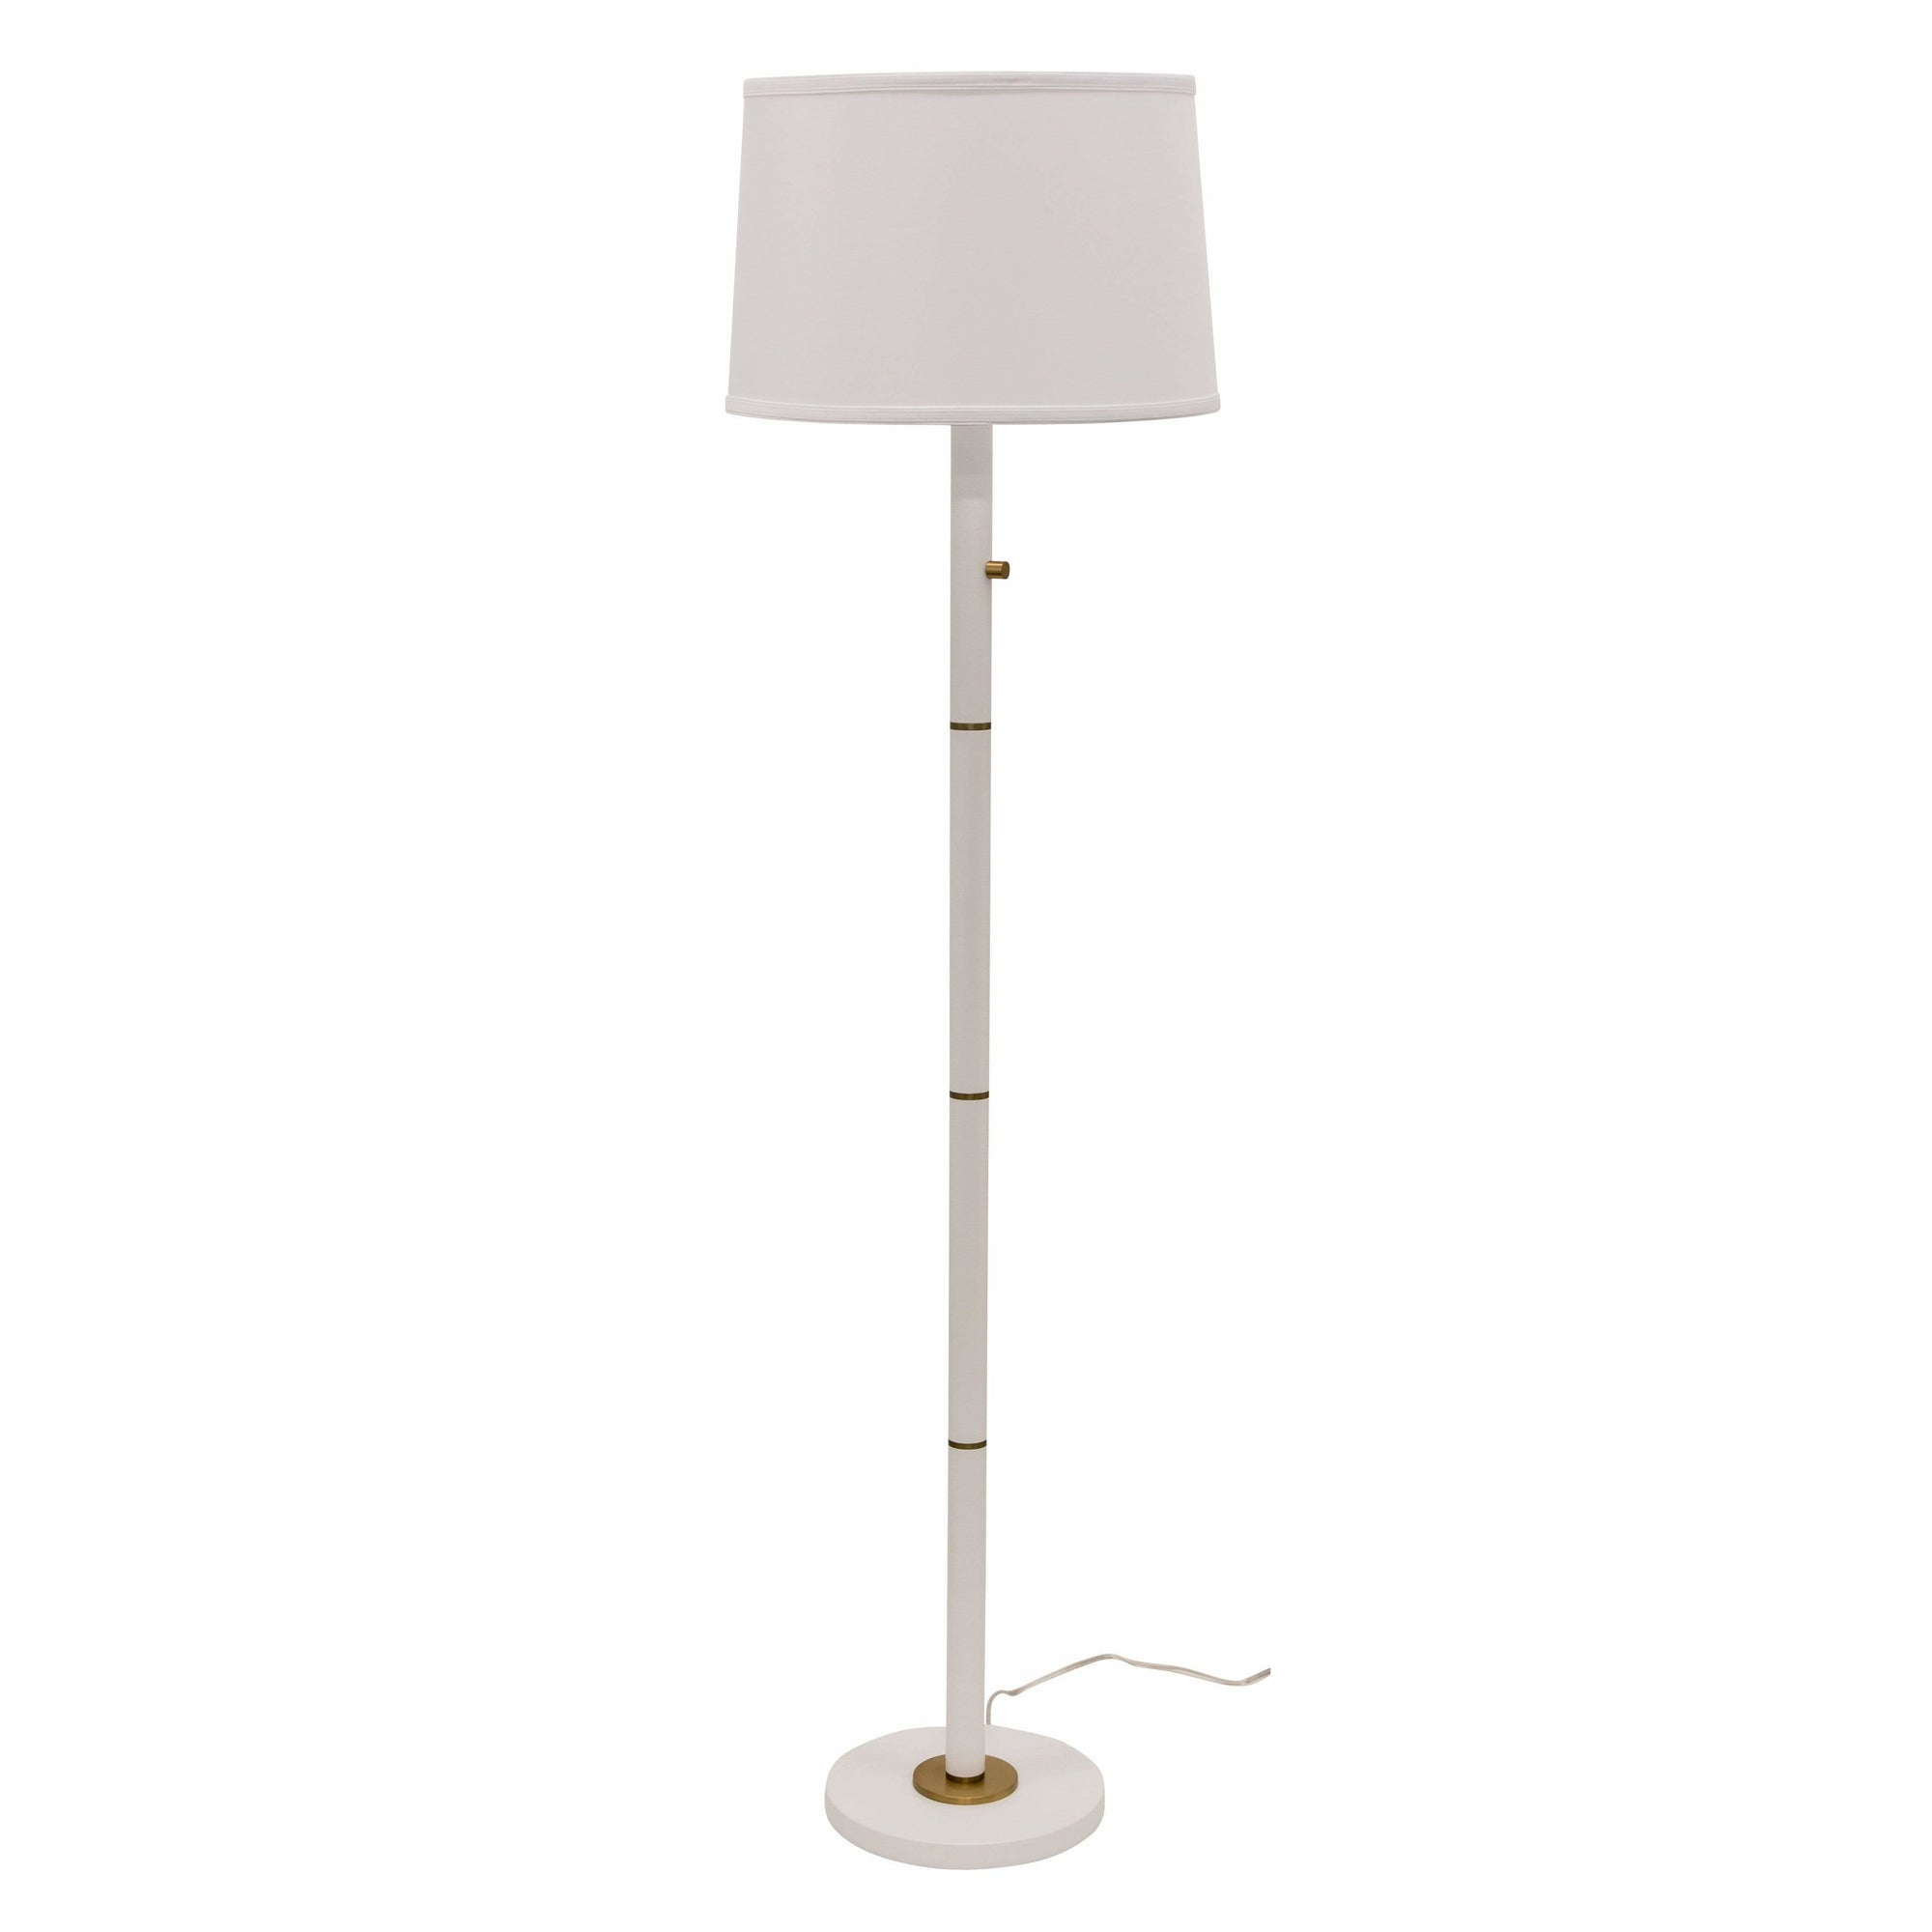 House Of Troy Floor Lamps Rupert Floor Lamp by House Of Troy RU703-WT